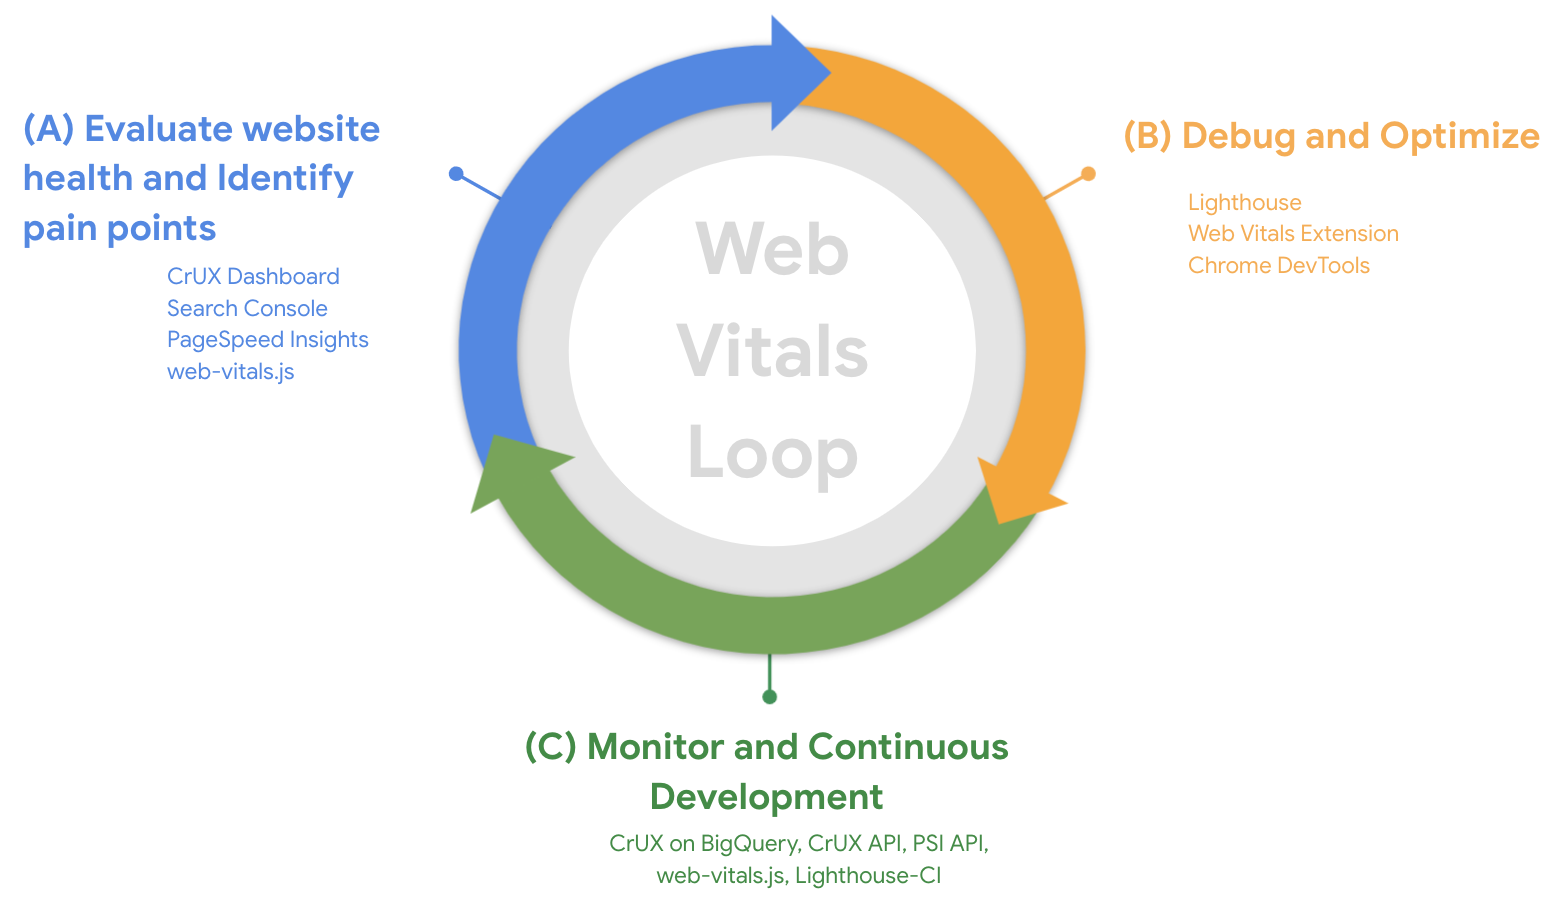 A diagram of the cycle outlined in this article: evaluate website health and identify pain points, debug and optimize, monitor and continuous development.